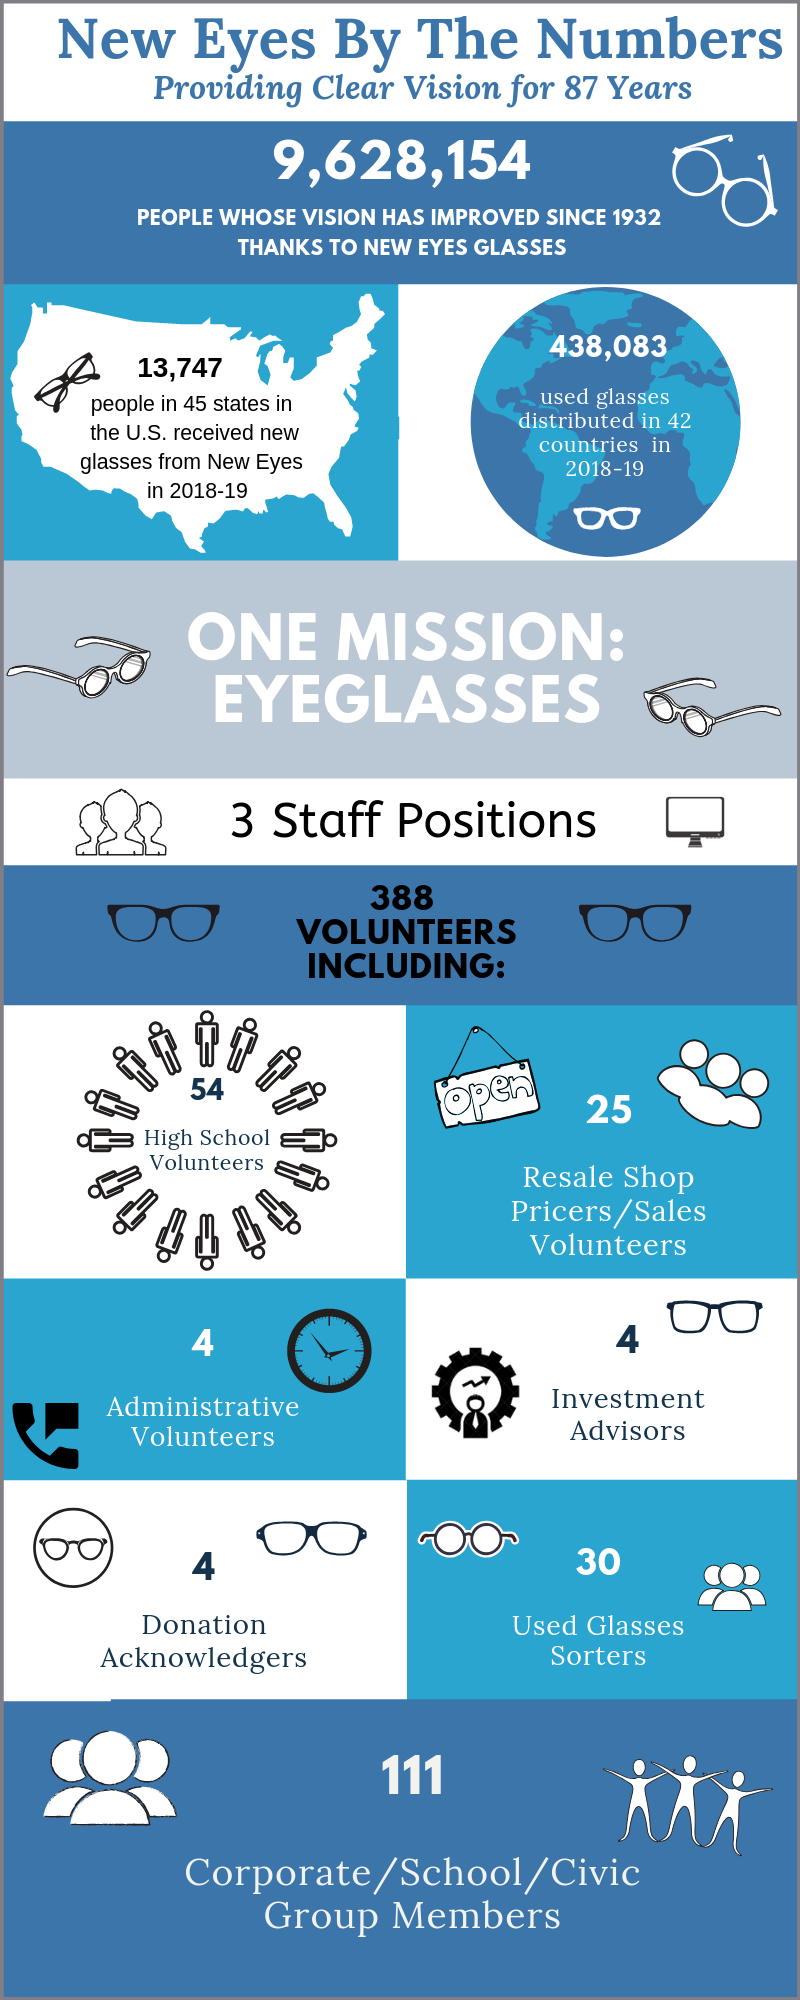 New Eyes by the Numbers 2018-19.png